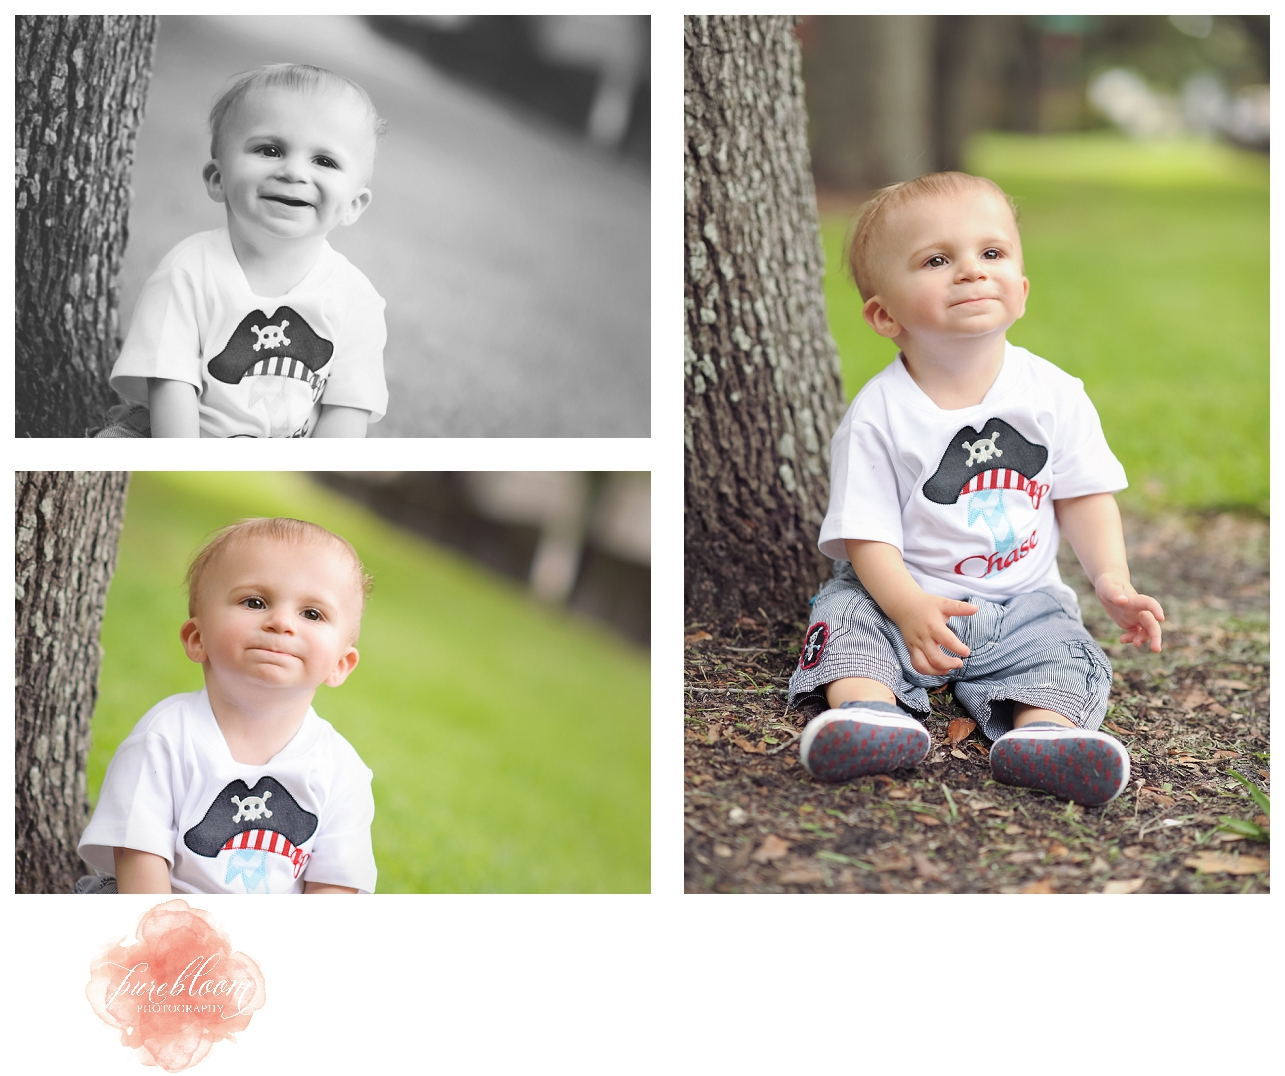 cake smash session | South Tampa Child Photographer | Pure Bloom Photography